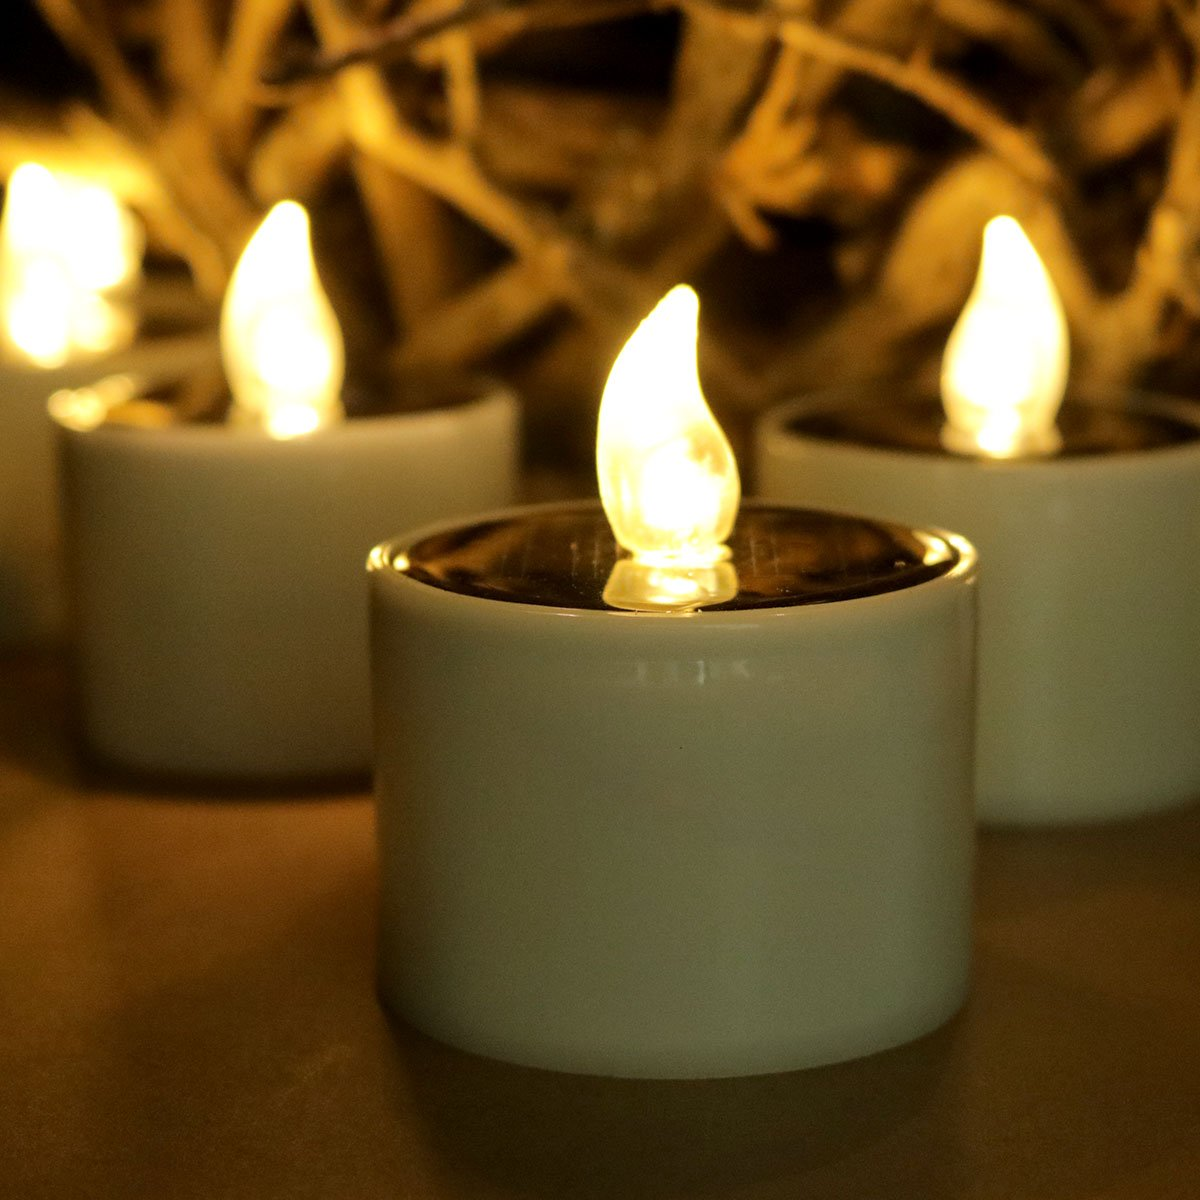 Led Solar Candles Pillar 6pcs, Flameless Tea Lights Large Solar Powered Flickering for Indoor Decorative, Windows Christmas Outdoors Pathway, Table Top, Cemetery, Halloween (Warm White)